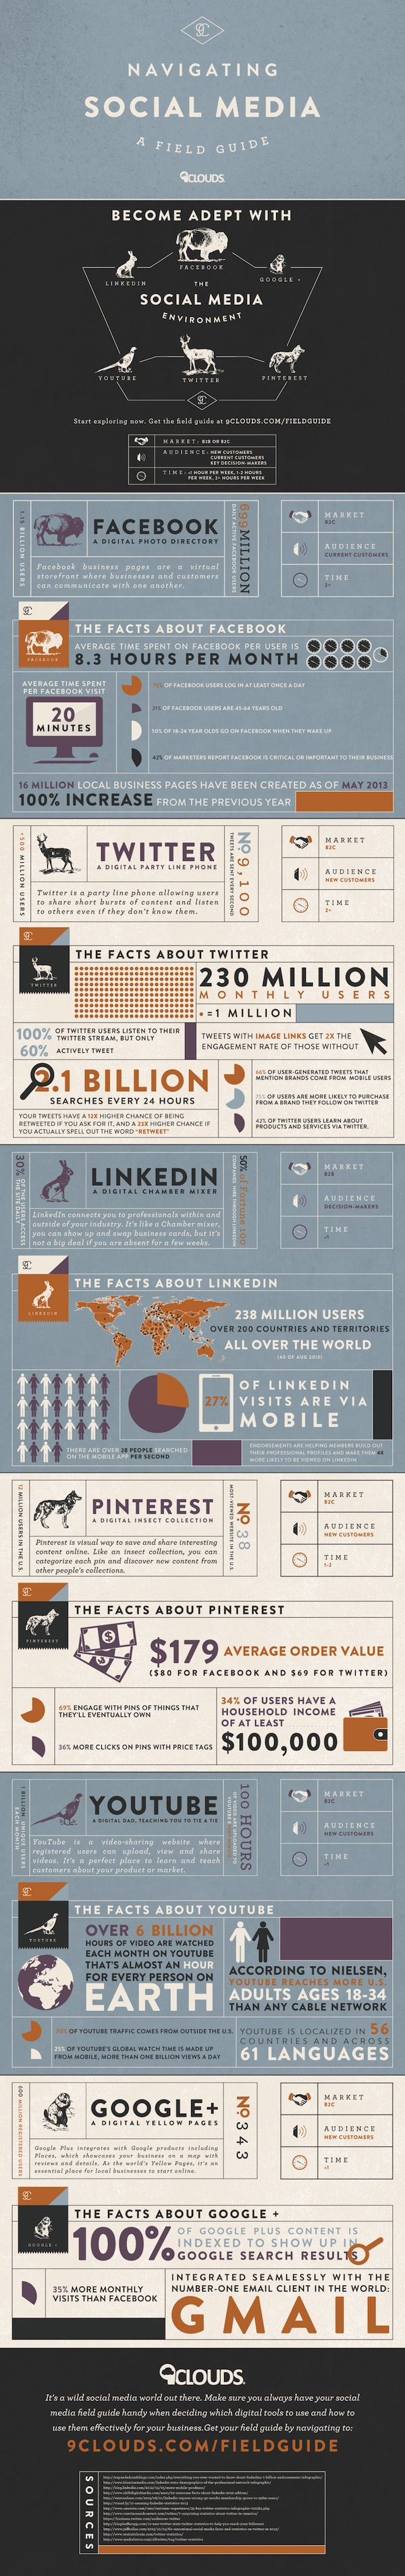 A Field Guide To Navigating Social Media [Infographic]